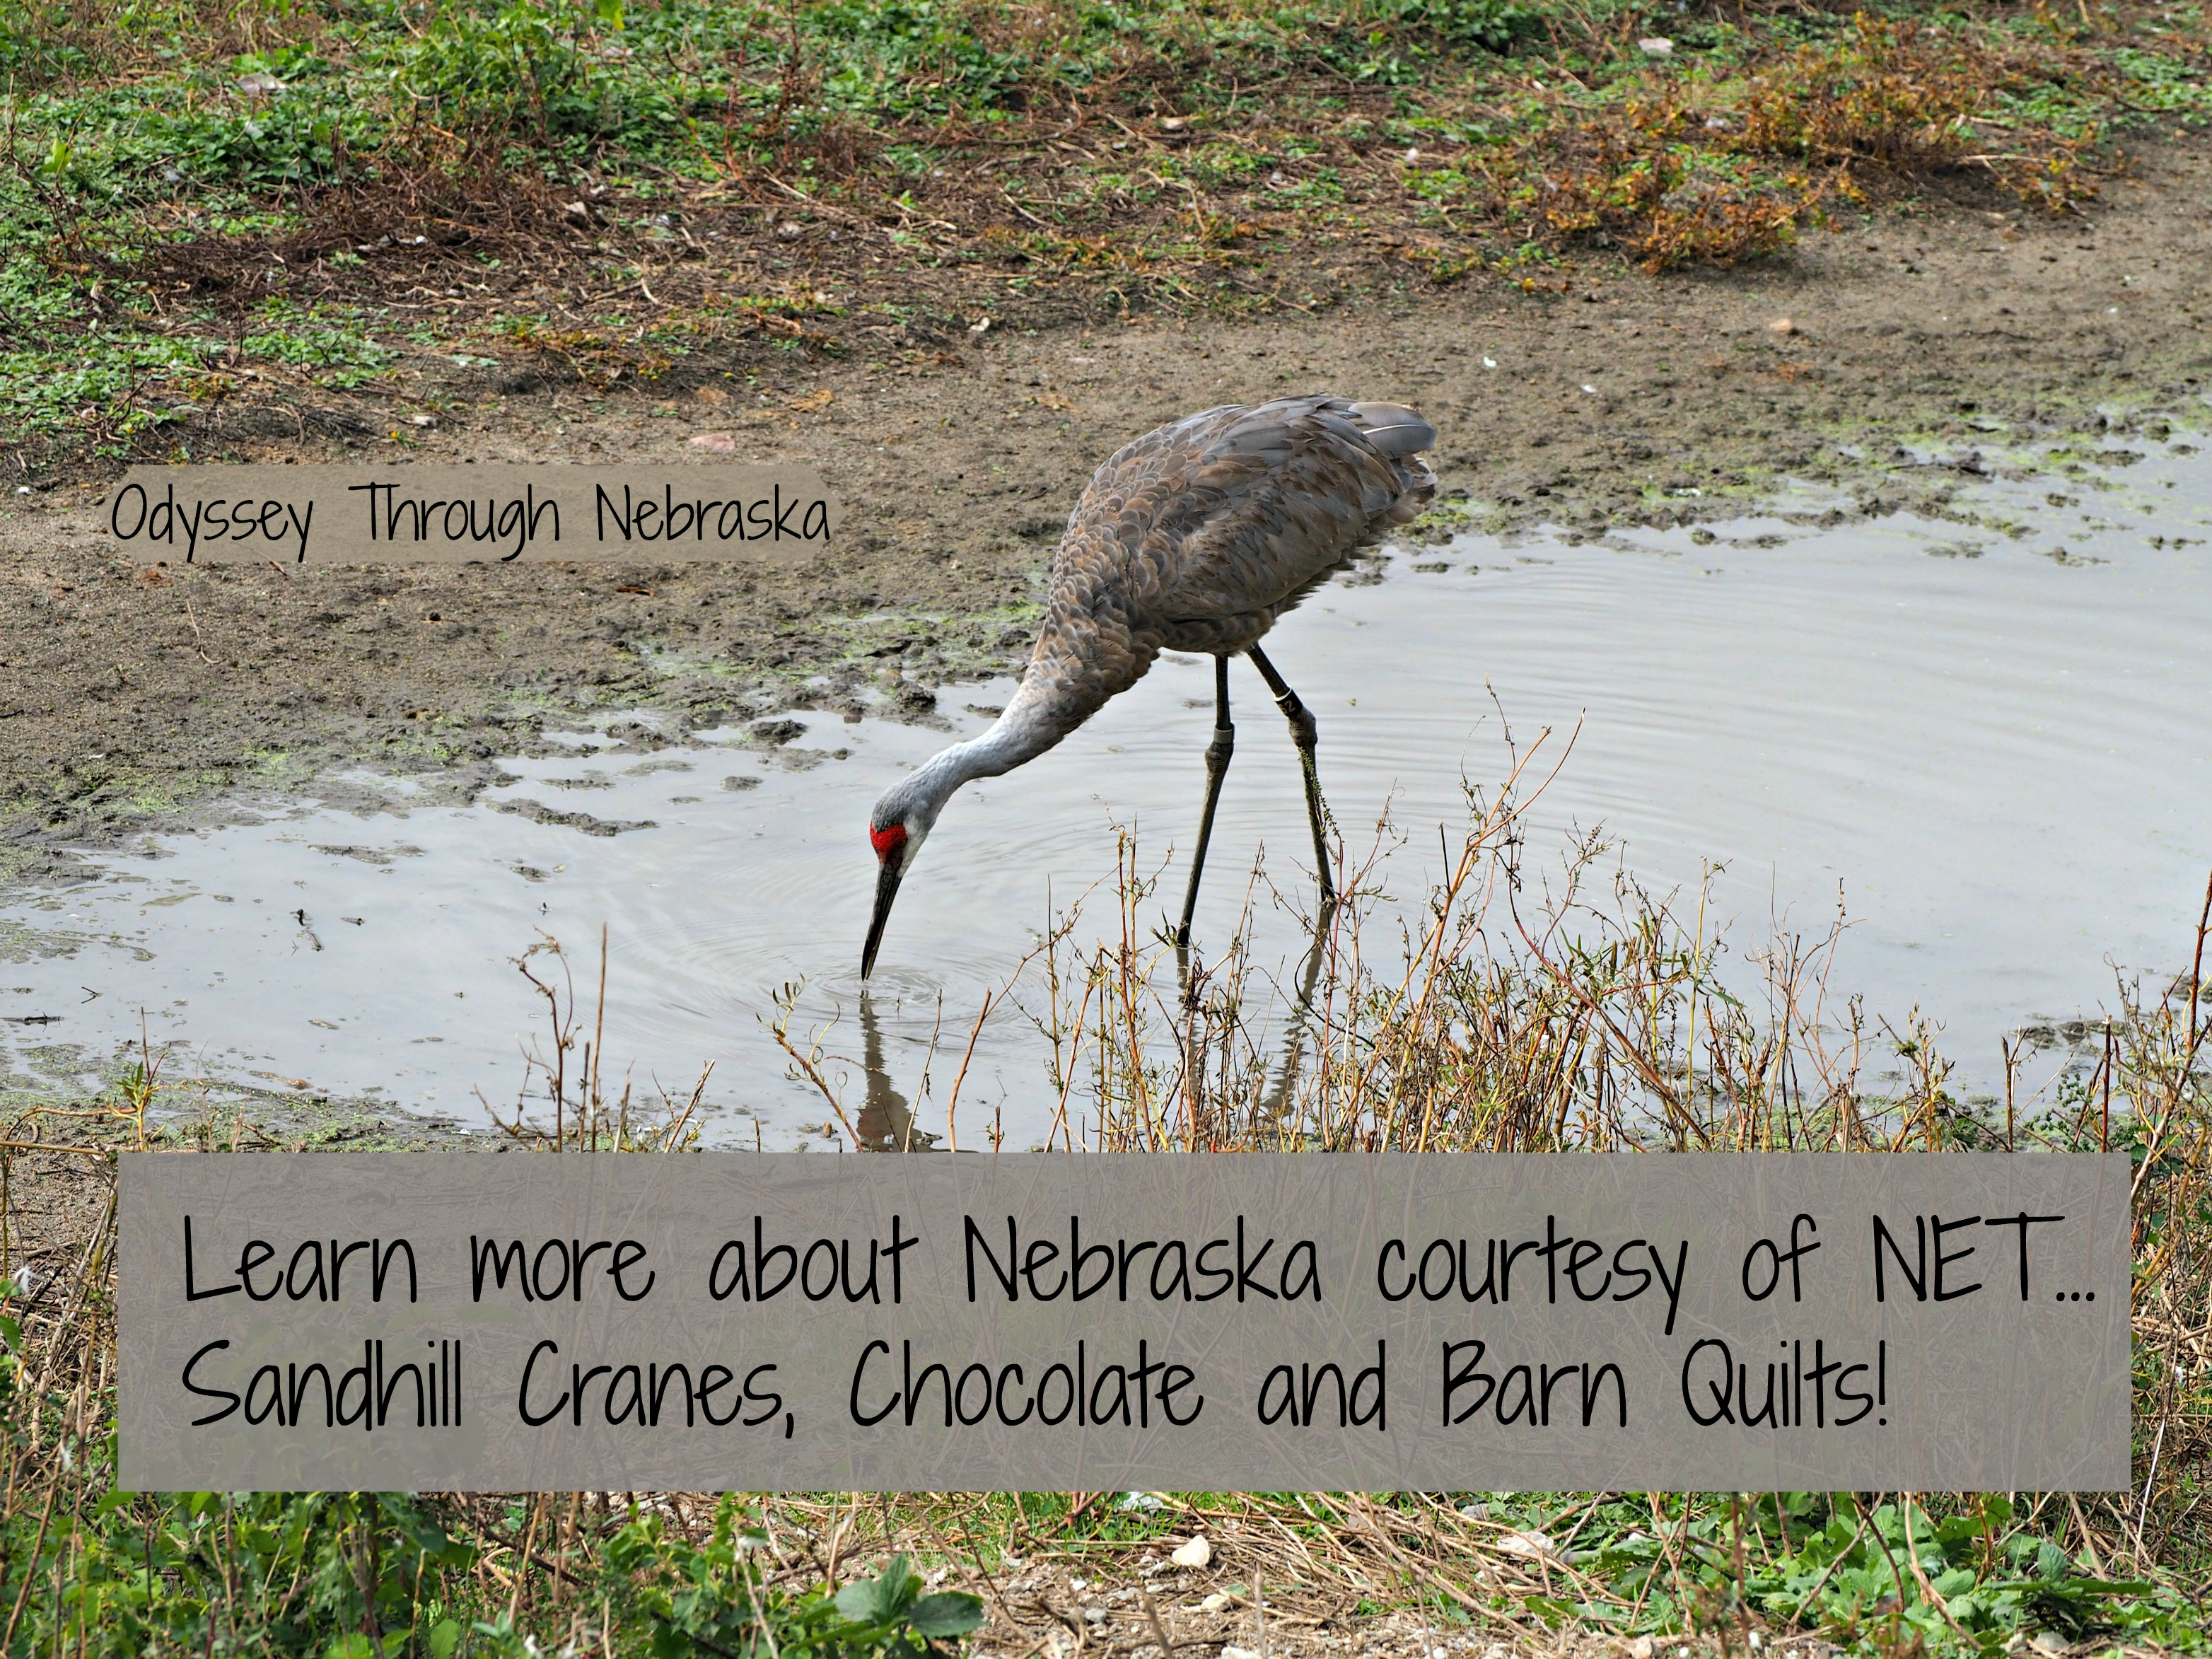 learn about Nebraska